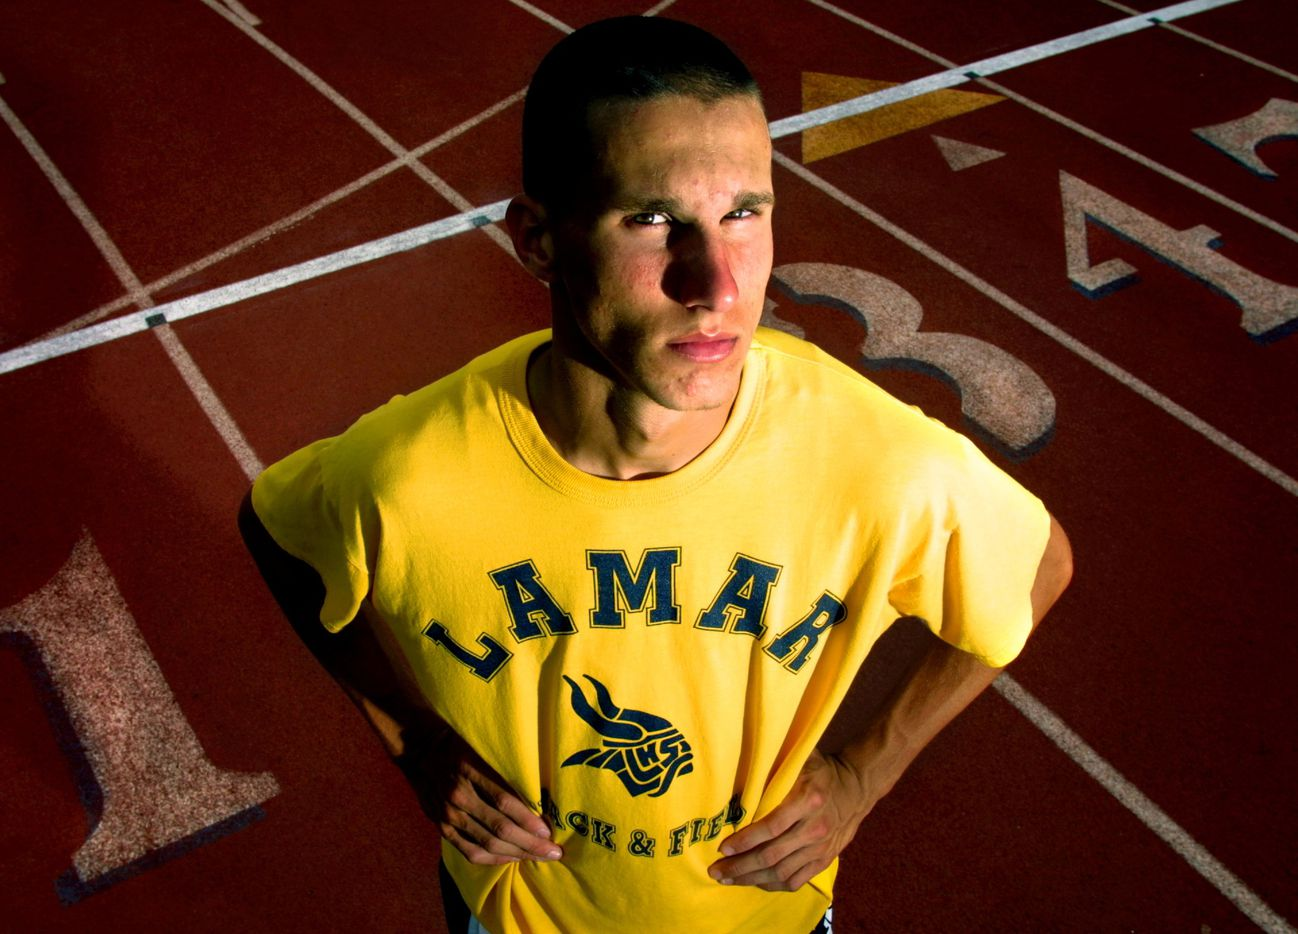 From 2003: Lamar junior Jeremy Wariner is headed to the state track and field meet later this month to compete in the boys 200 meter and 400 meter sprints.